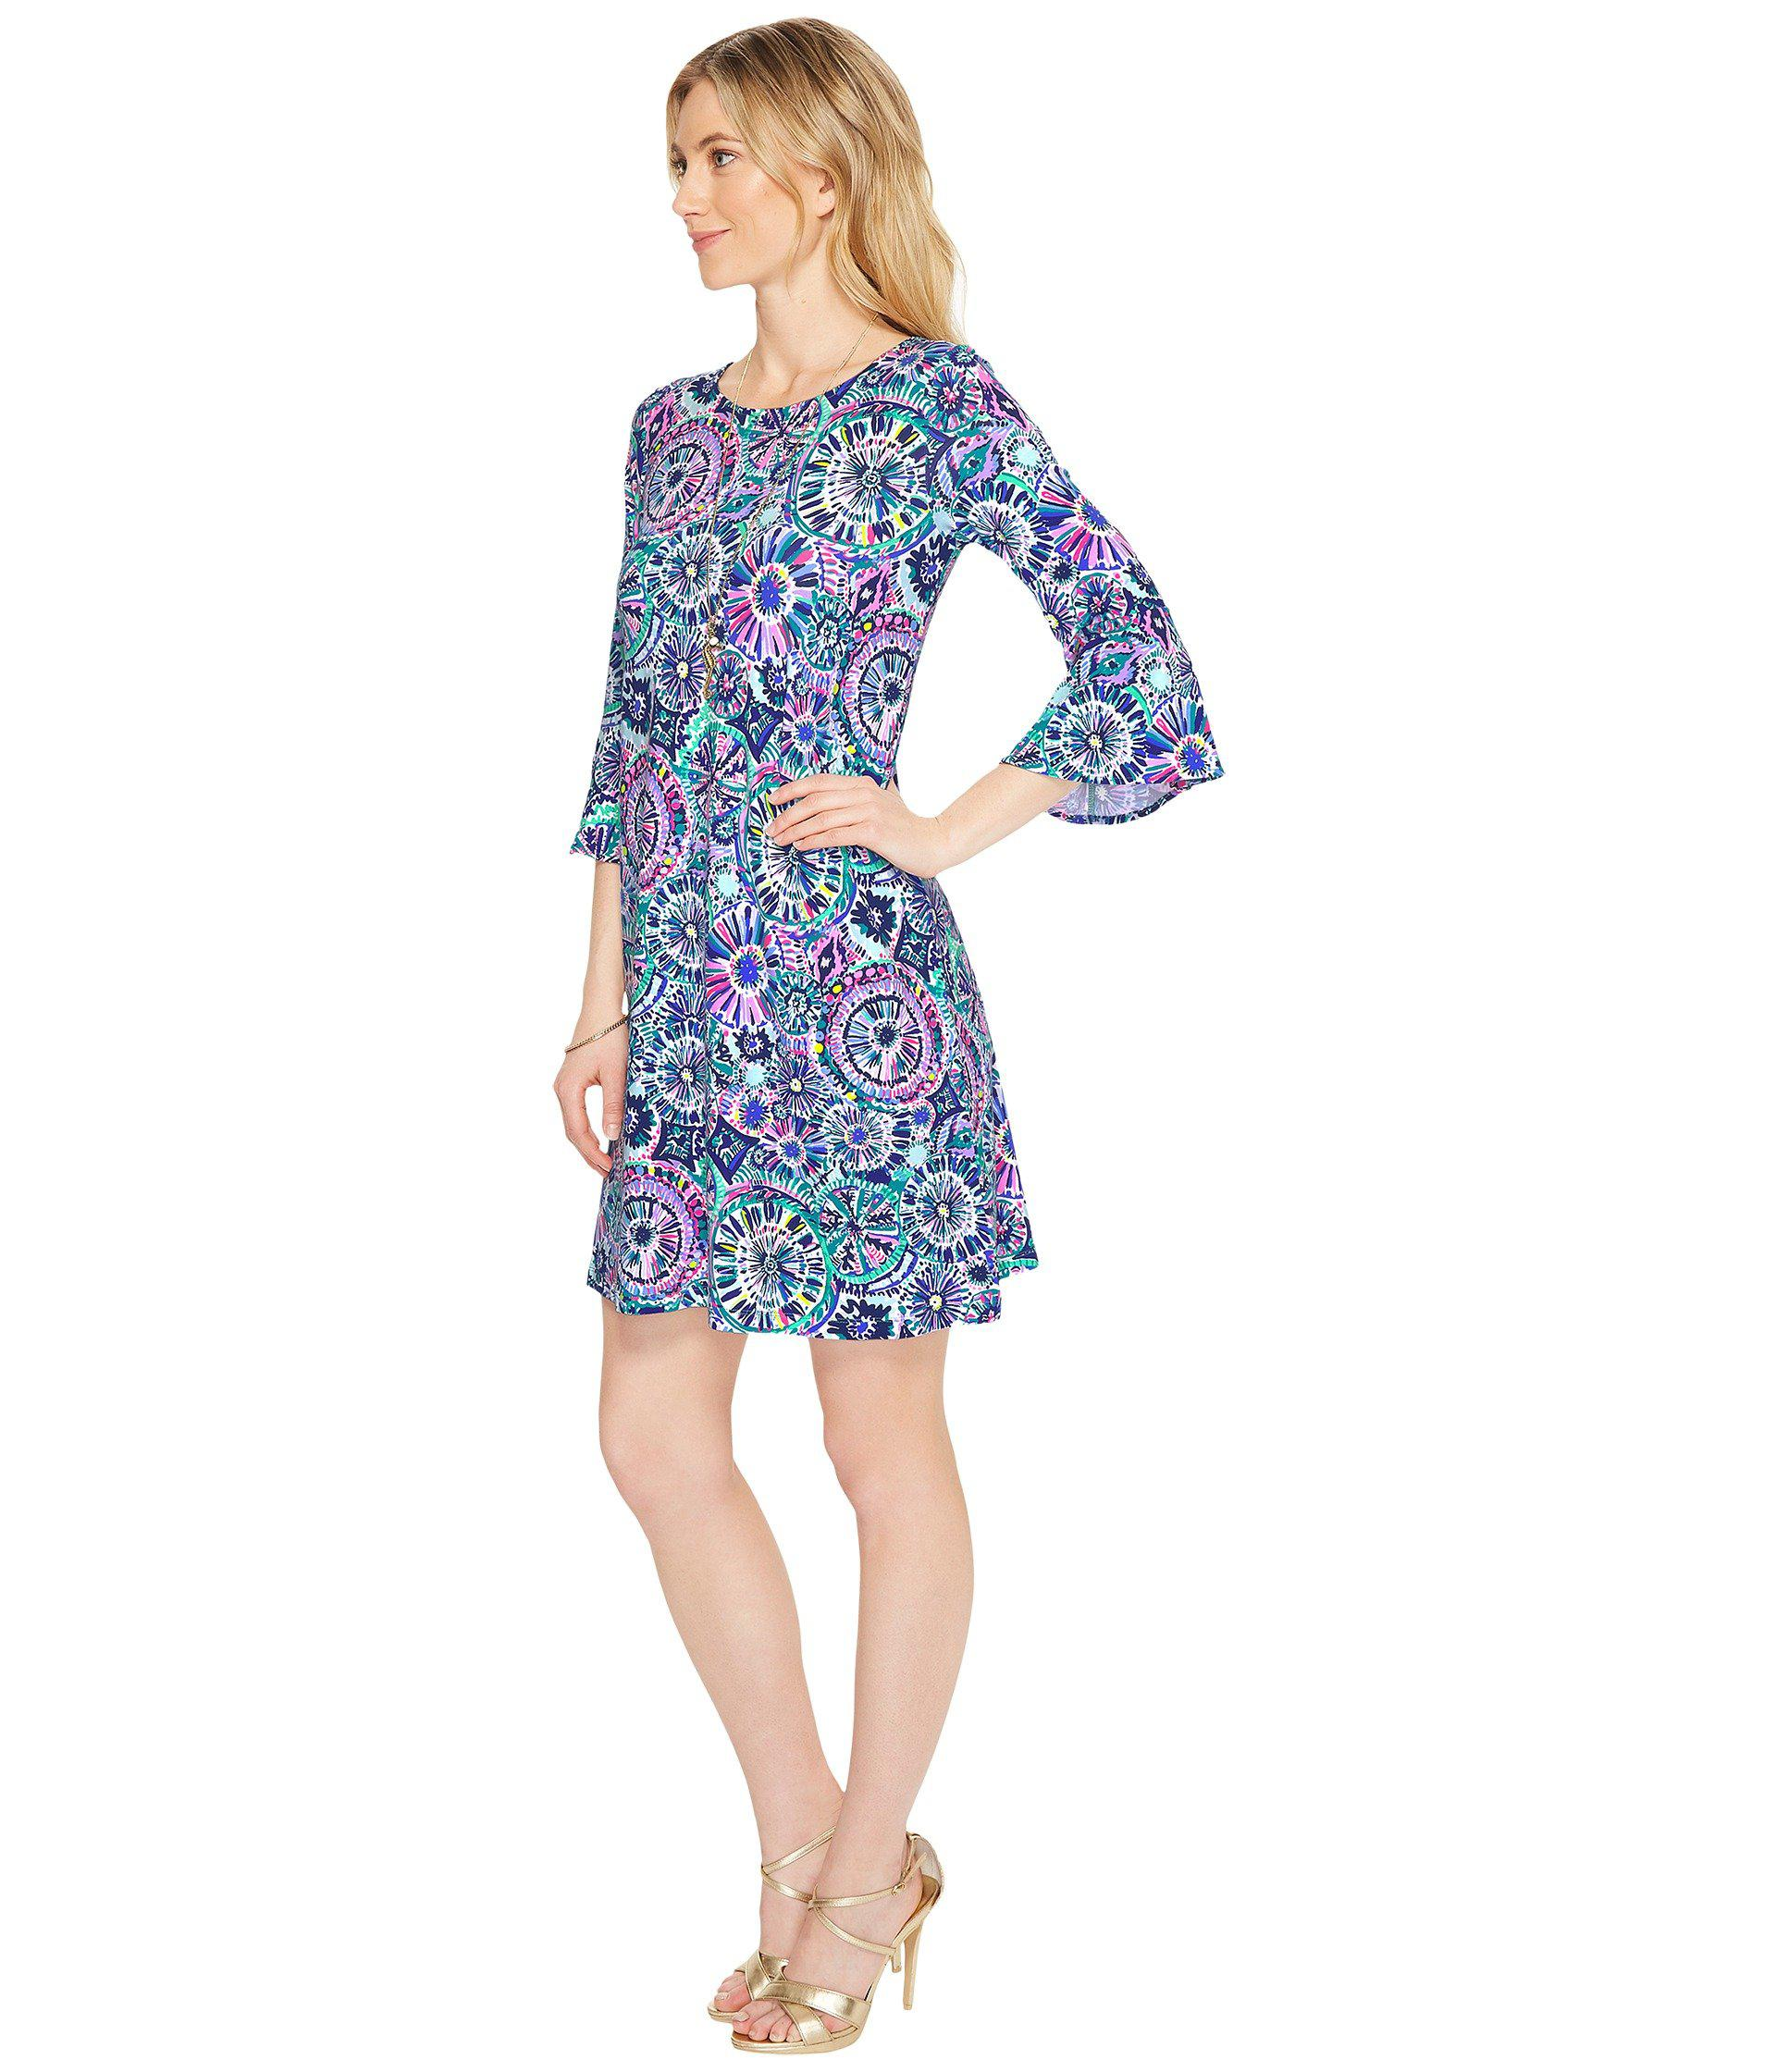 Lyst Lilly Pulitzer Ophelia Dress in Blue